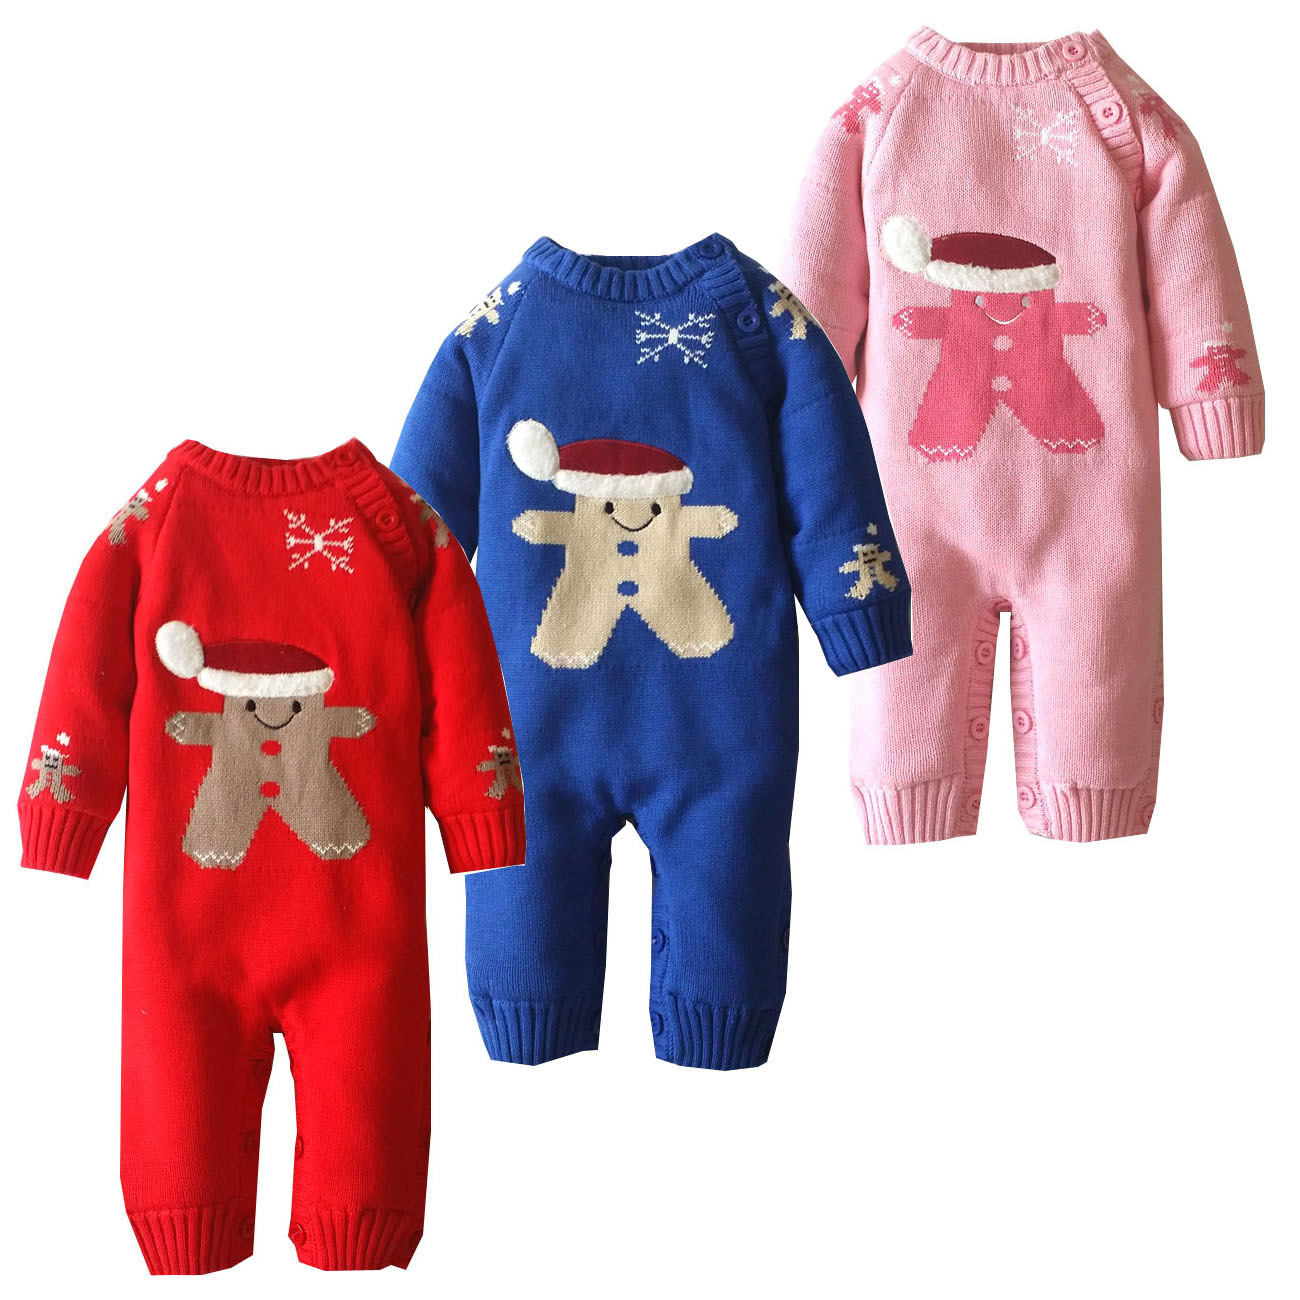 Chrismas Santa Claus Baby Rompers Pajamas Newborn Clothes Cartoon Infant Fleece Long Sleeve Jumpsuits Boy Girl Warm Winter Wear cartoon fox baby rompers pajamas newborn baby clothes infant cotton long sleeve jumpsuits boy girl warm autumn clothes wear